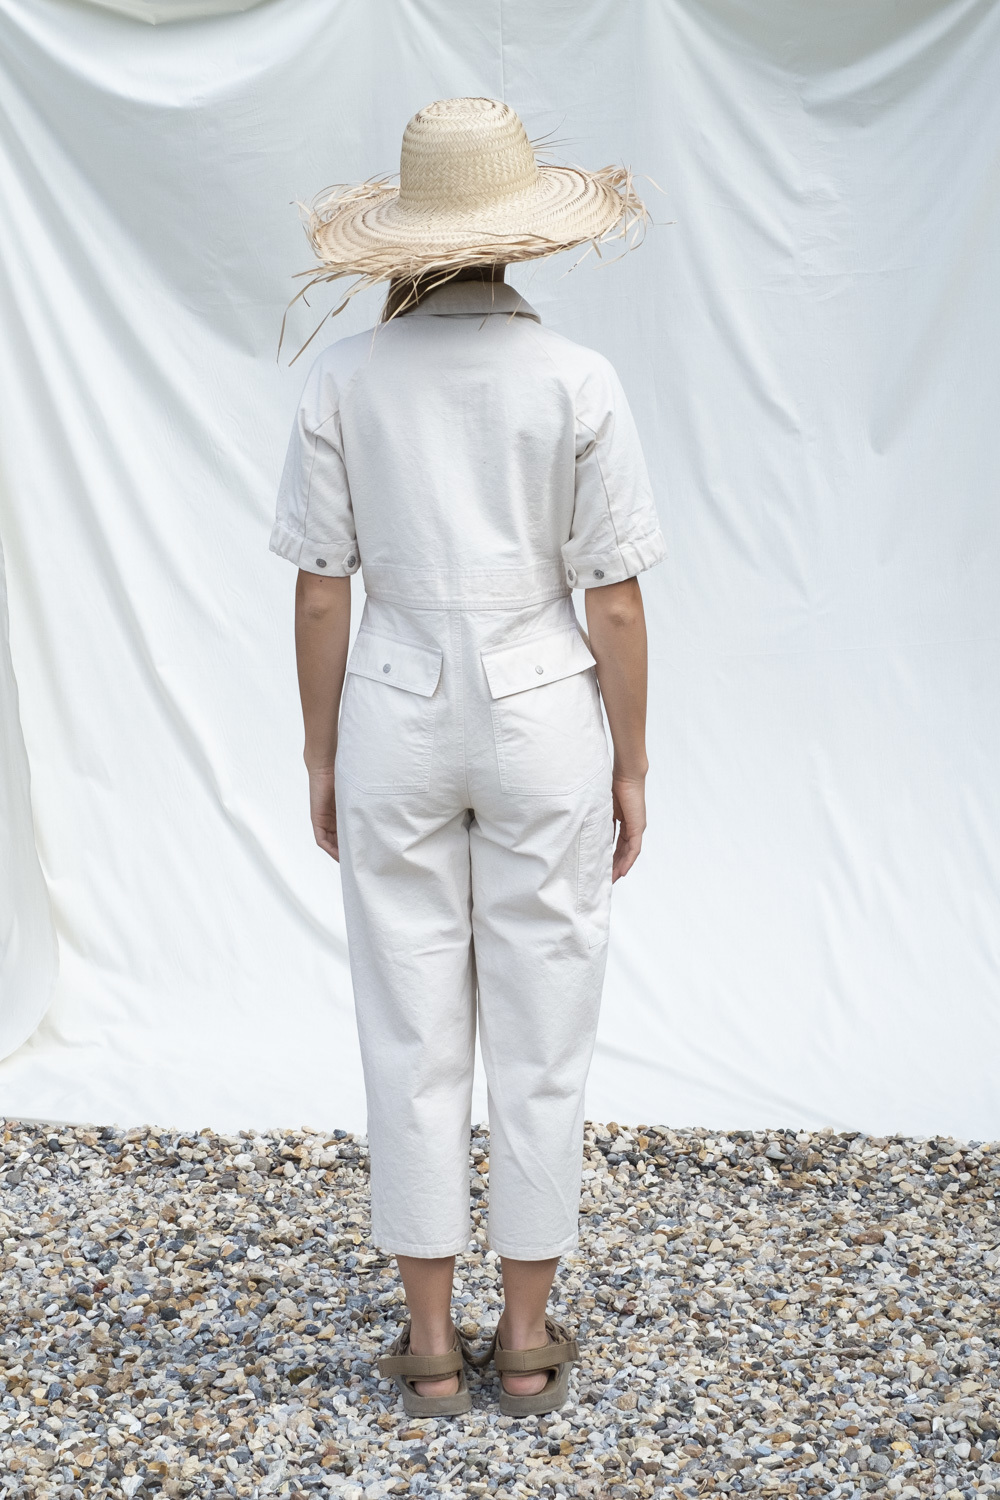 W'menswear Tropical Fieldwork Suit in Off-White